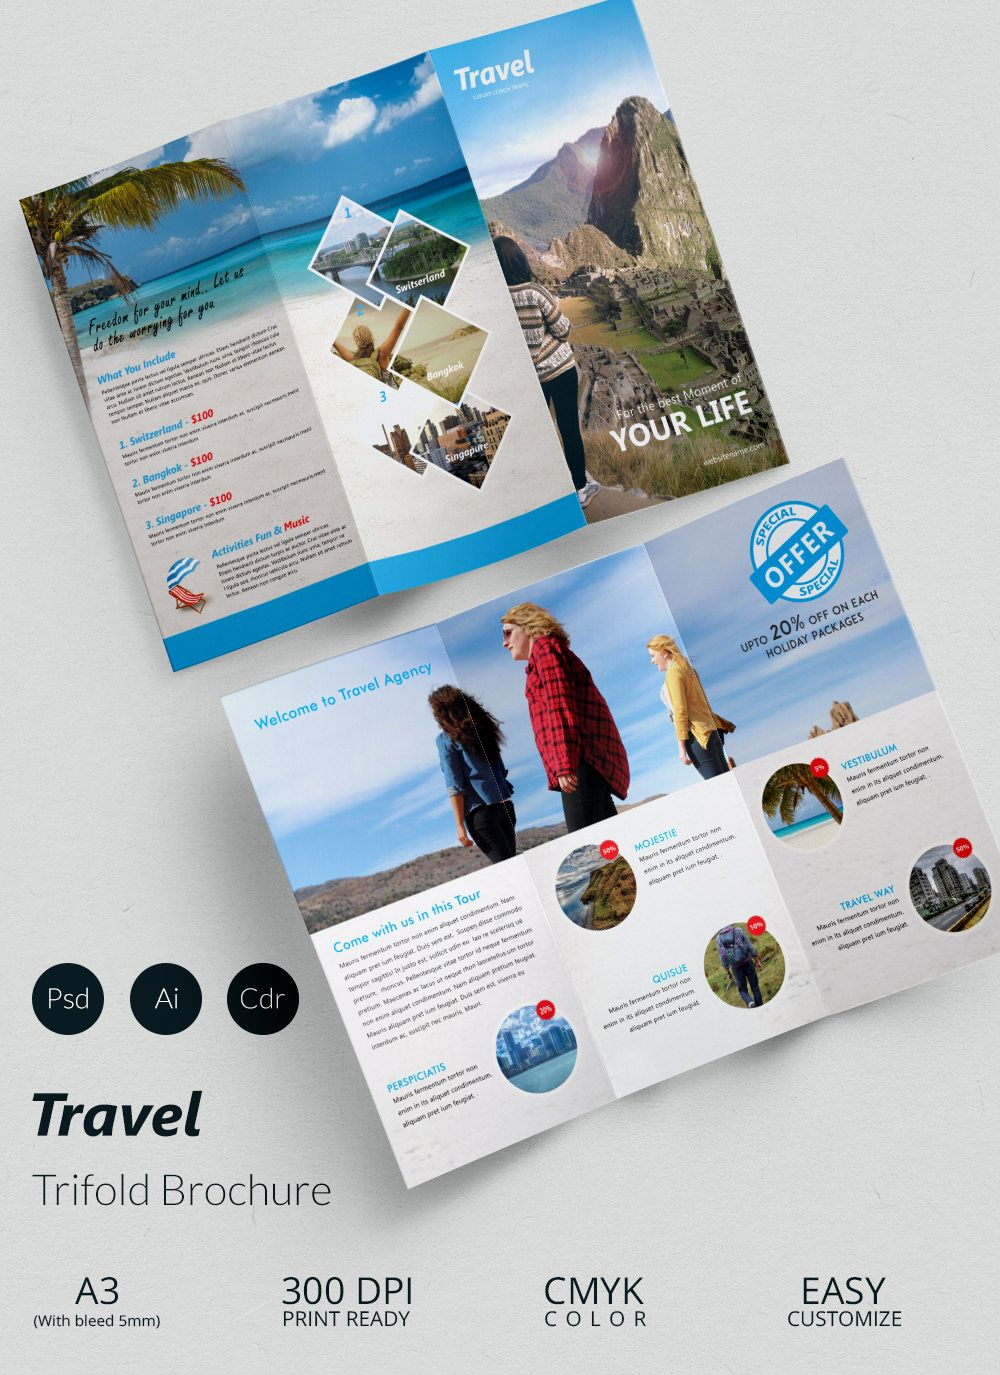 Travel A3 Trifold Brochure Template  Free Brochure Design Templates Word